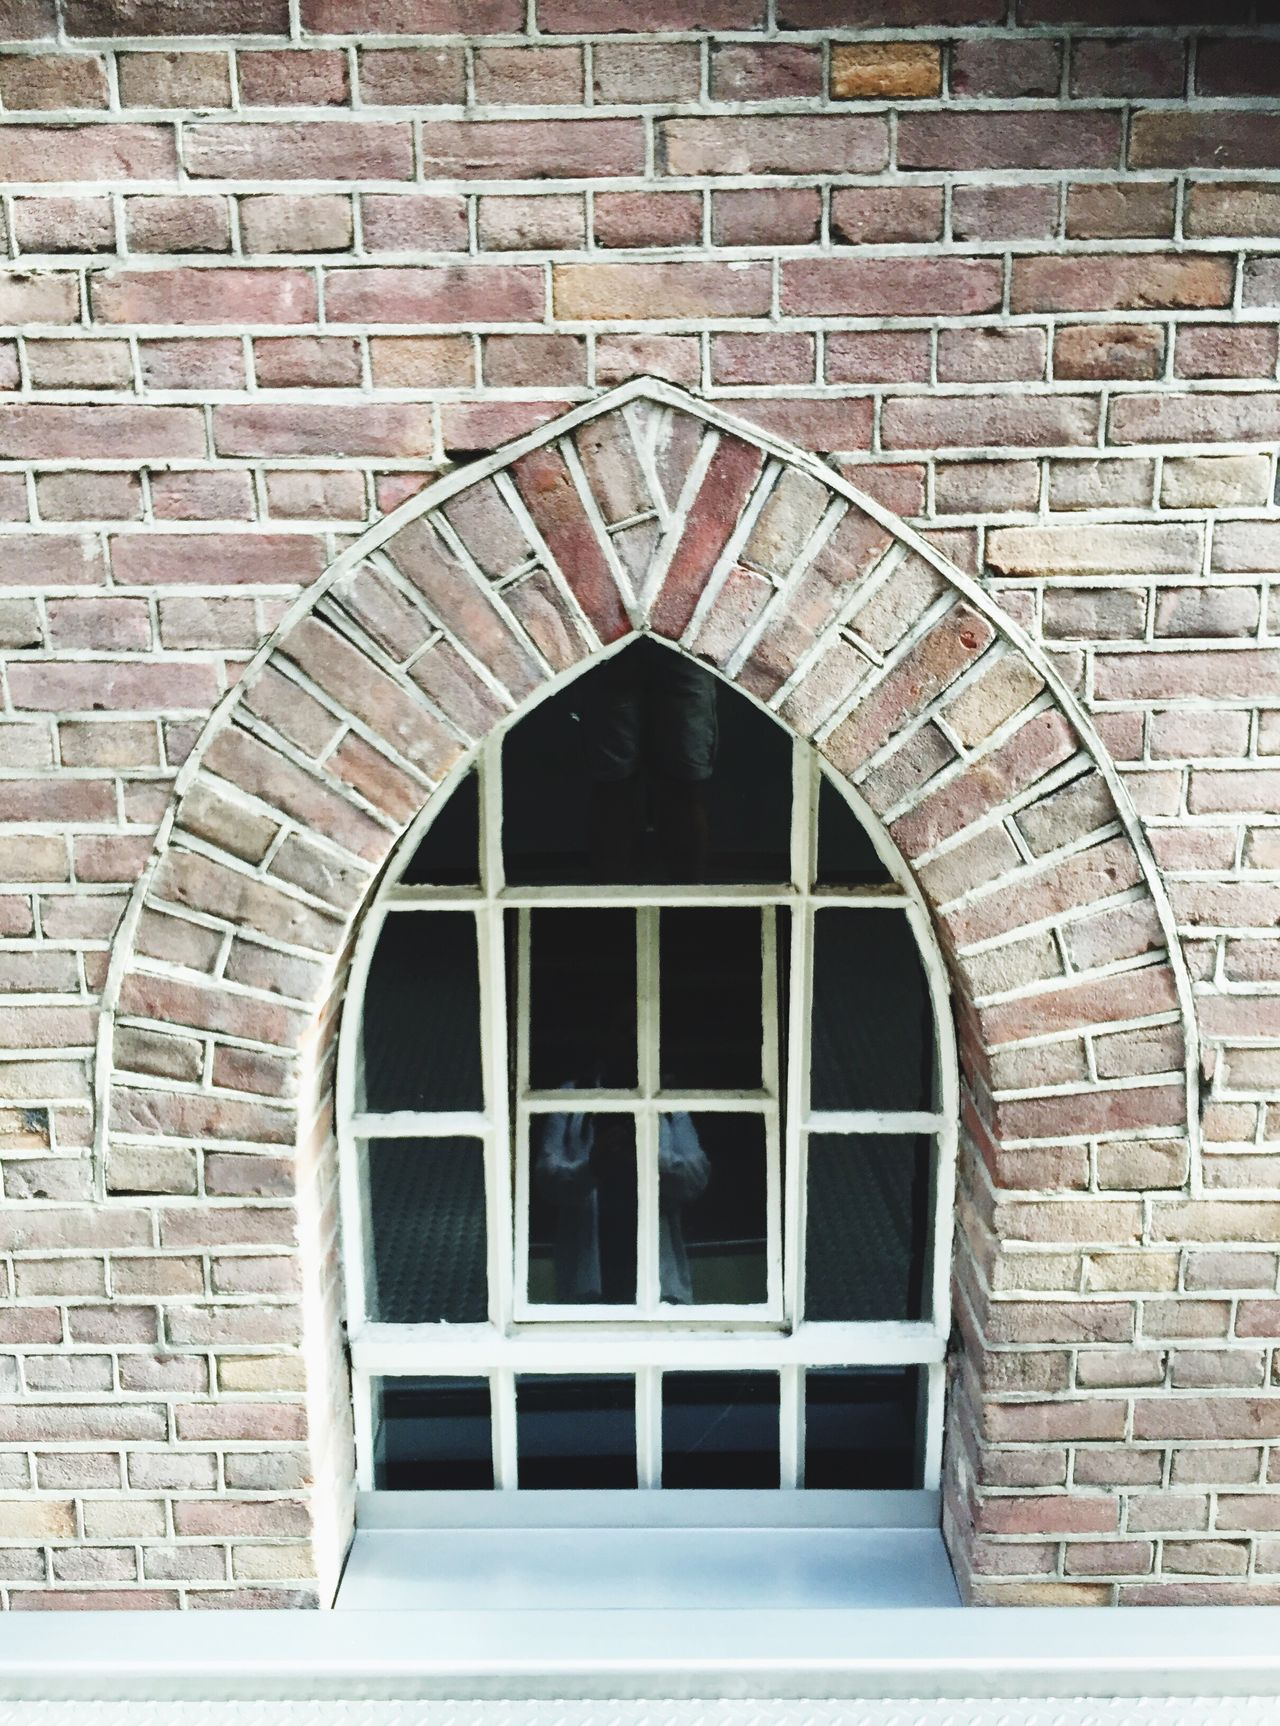 Brick Wall Architecture Built Structure Arch Building Exterior Window Brick Arched Day Outdoors Window Frame Entryway No People EE Love Connection! Taking Photos Eyemphotography Eyem Best Edits Light And Shadow Eye4photography  EyeEm Best Shots Outside Photography Architectural Detail Architecture